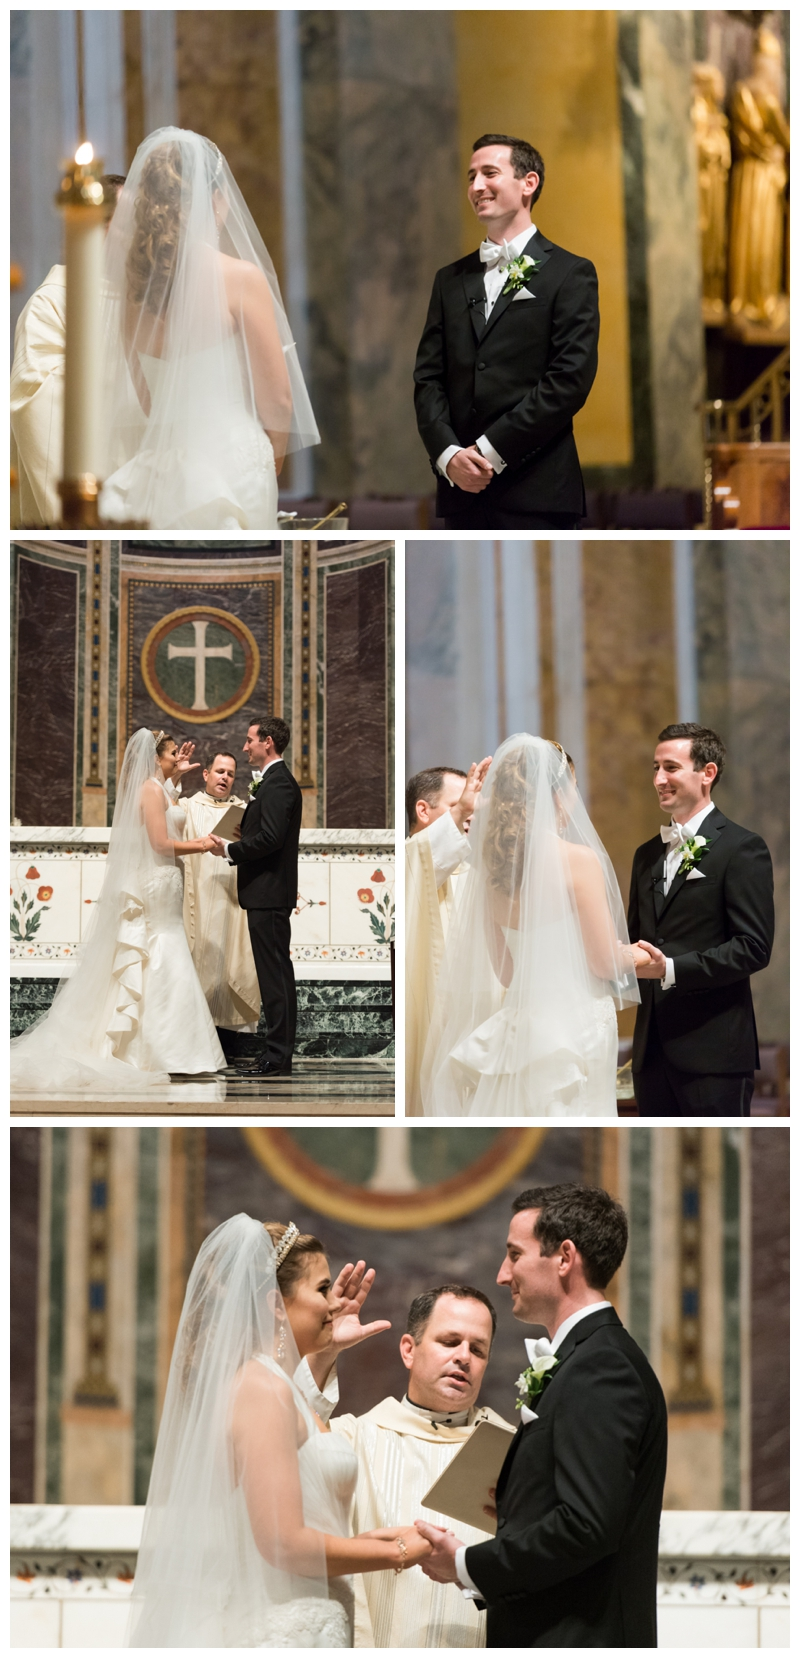 Washington DC Wedding at St Matthew's Cathedral by Rachael Foster Photography_0035.jpg